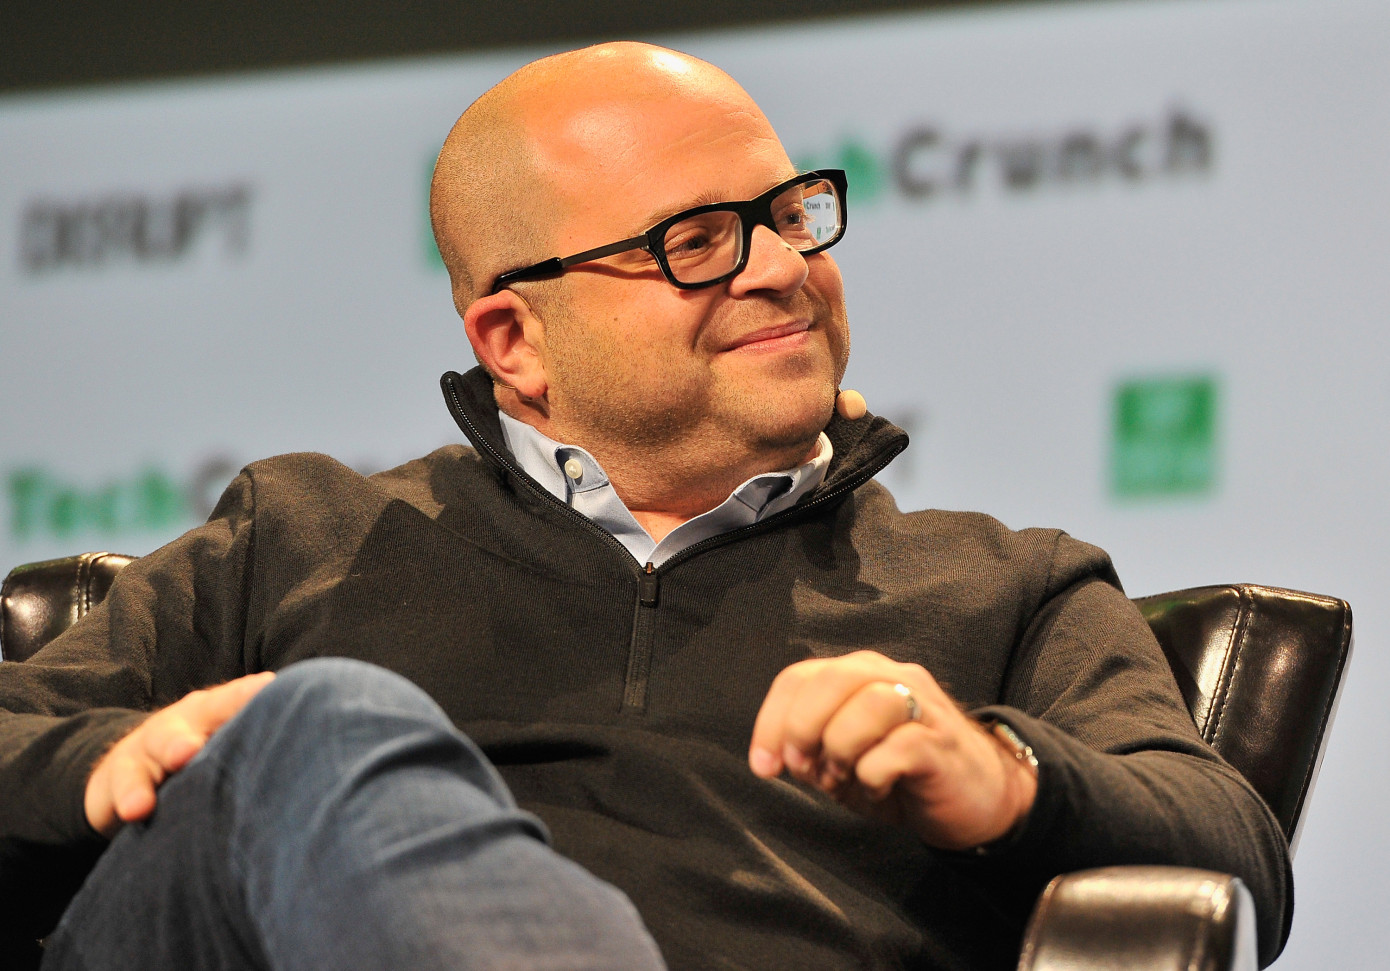 Twilio acquires email API platform SendGrid for $2 billion in stock